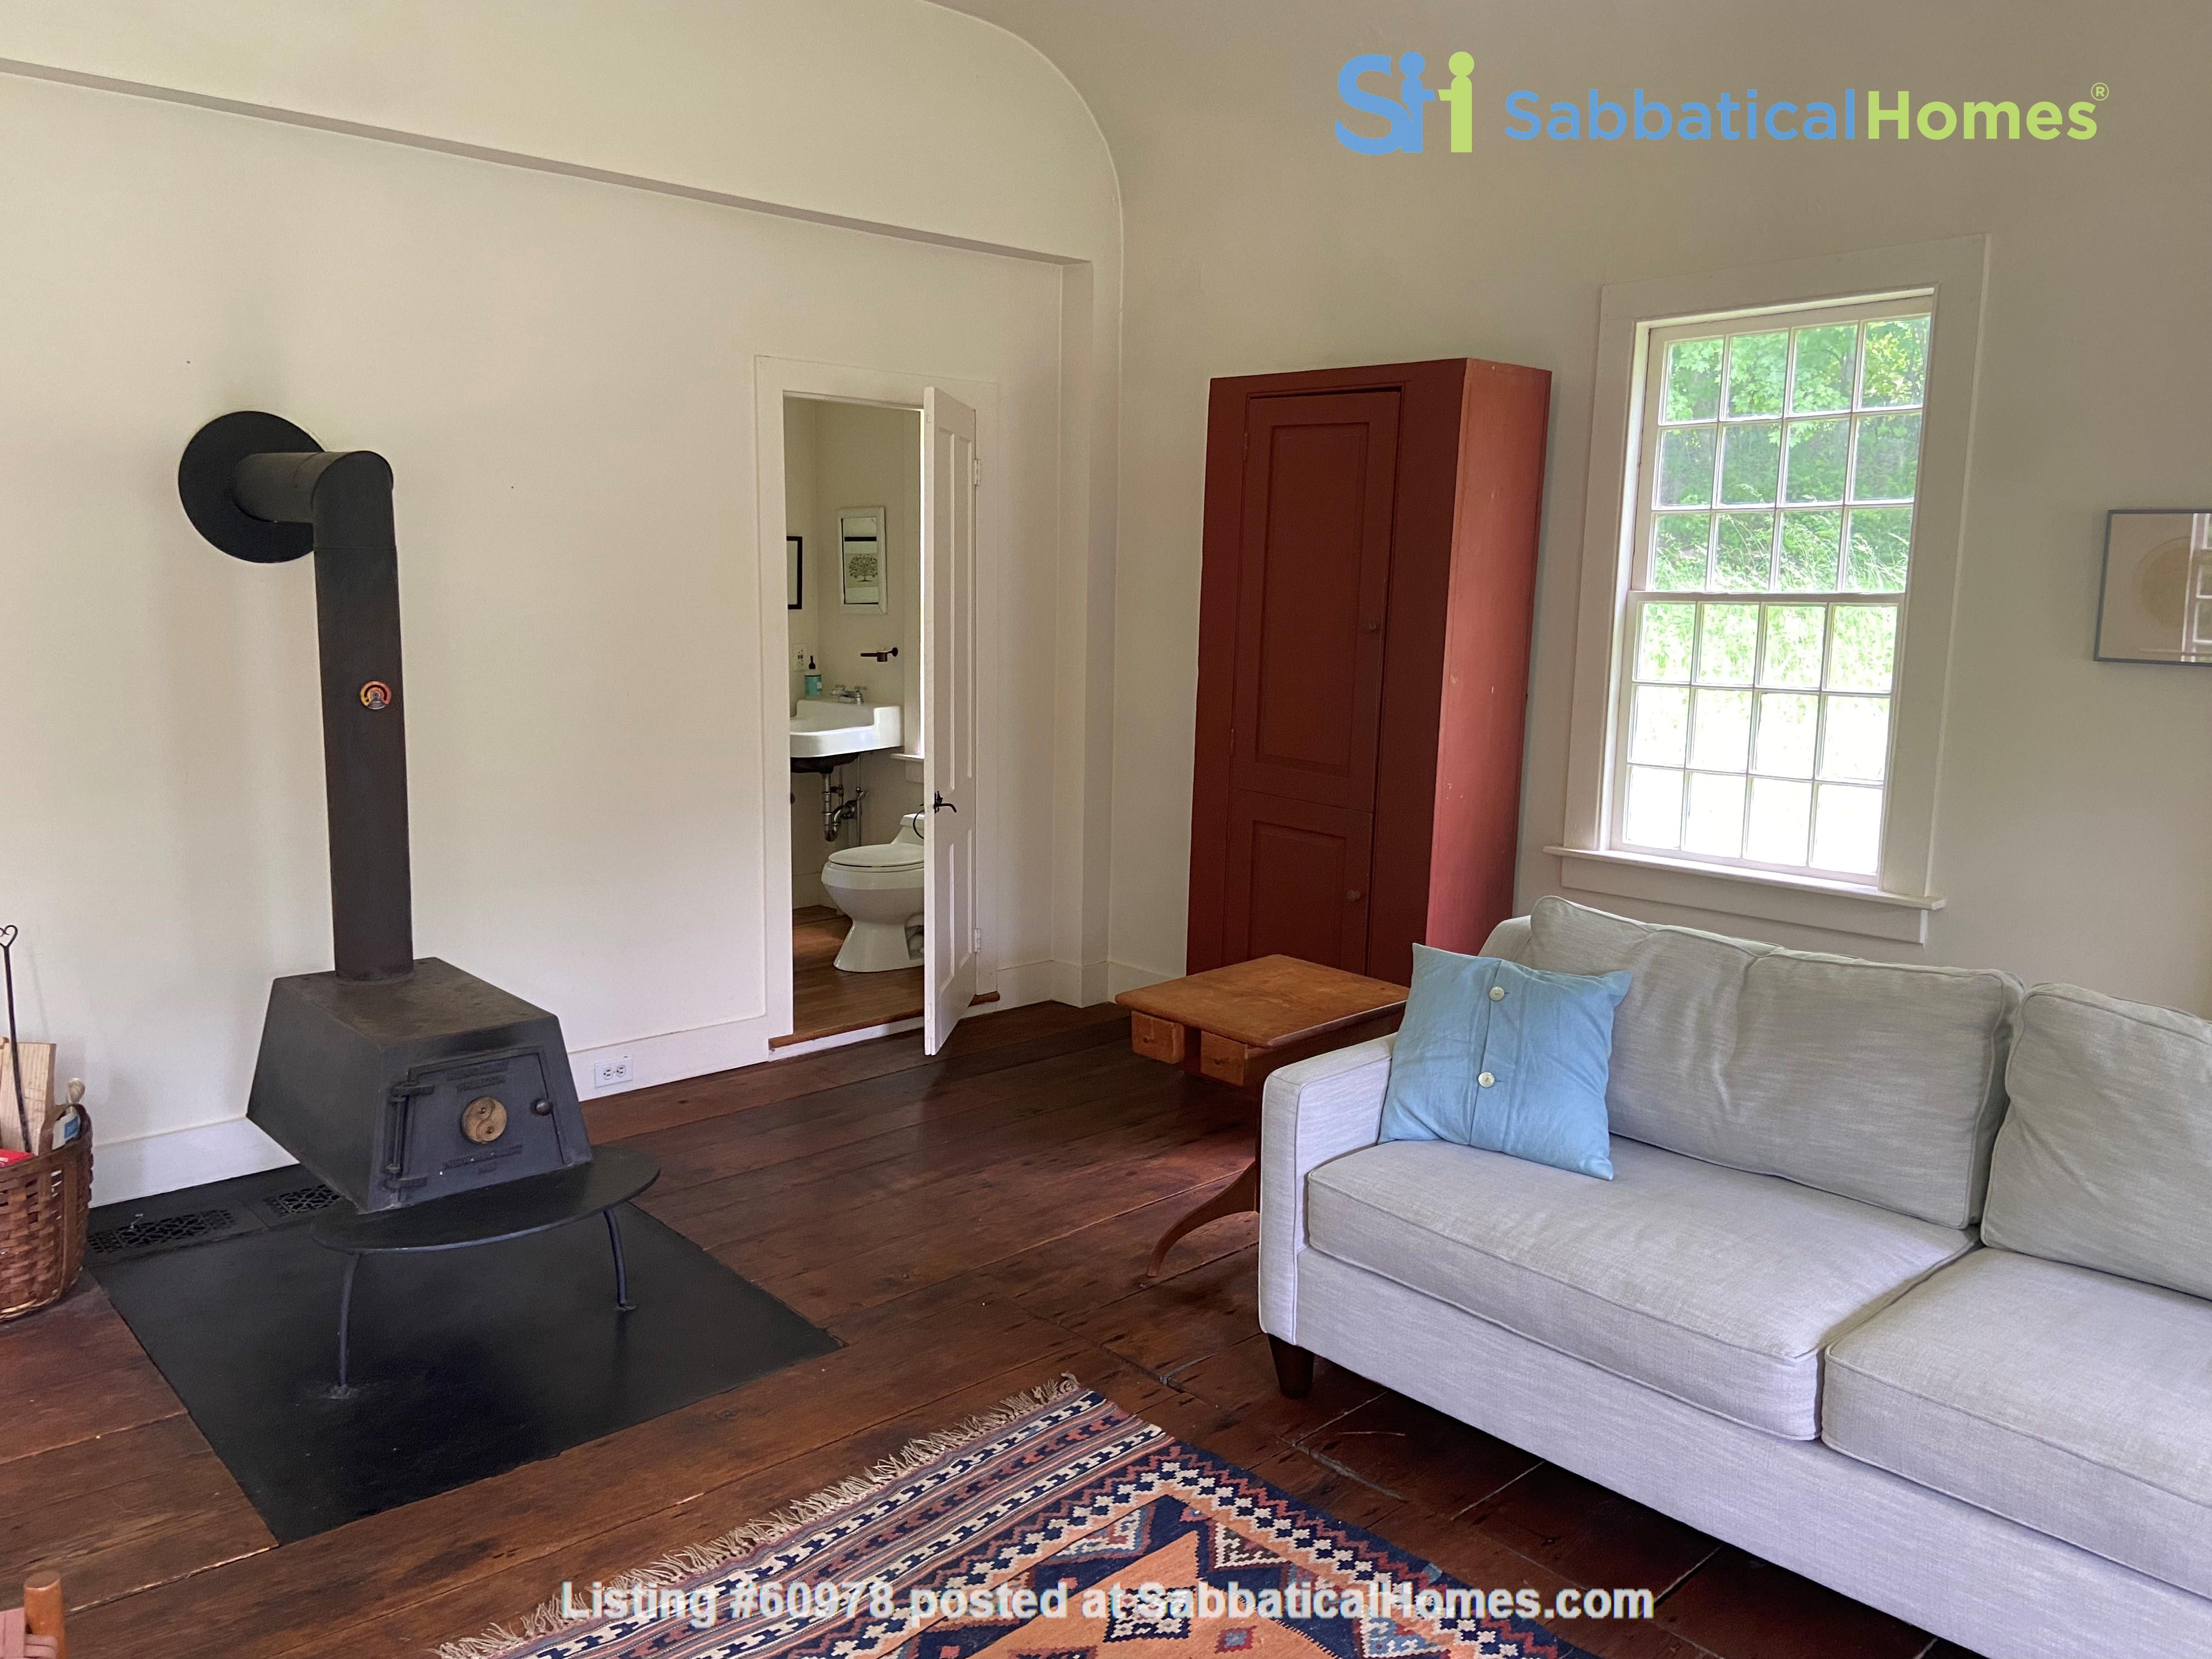 Writer's Retreat -- Idyllic Rural Cabin Home Rental in Cornwall, Connecticut, United States 4